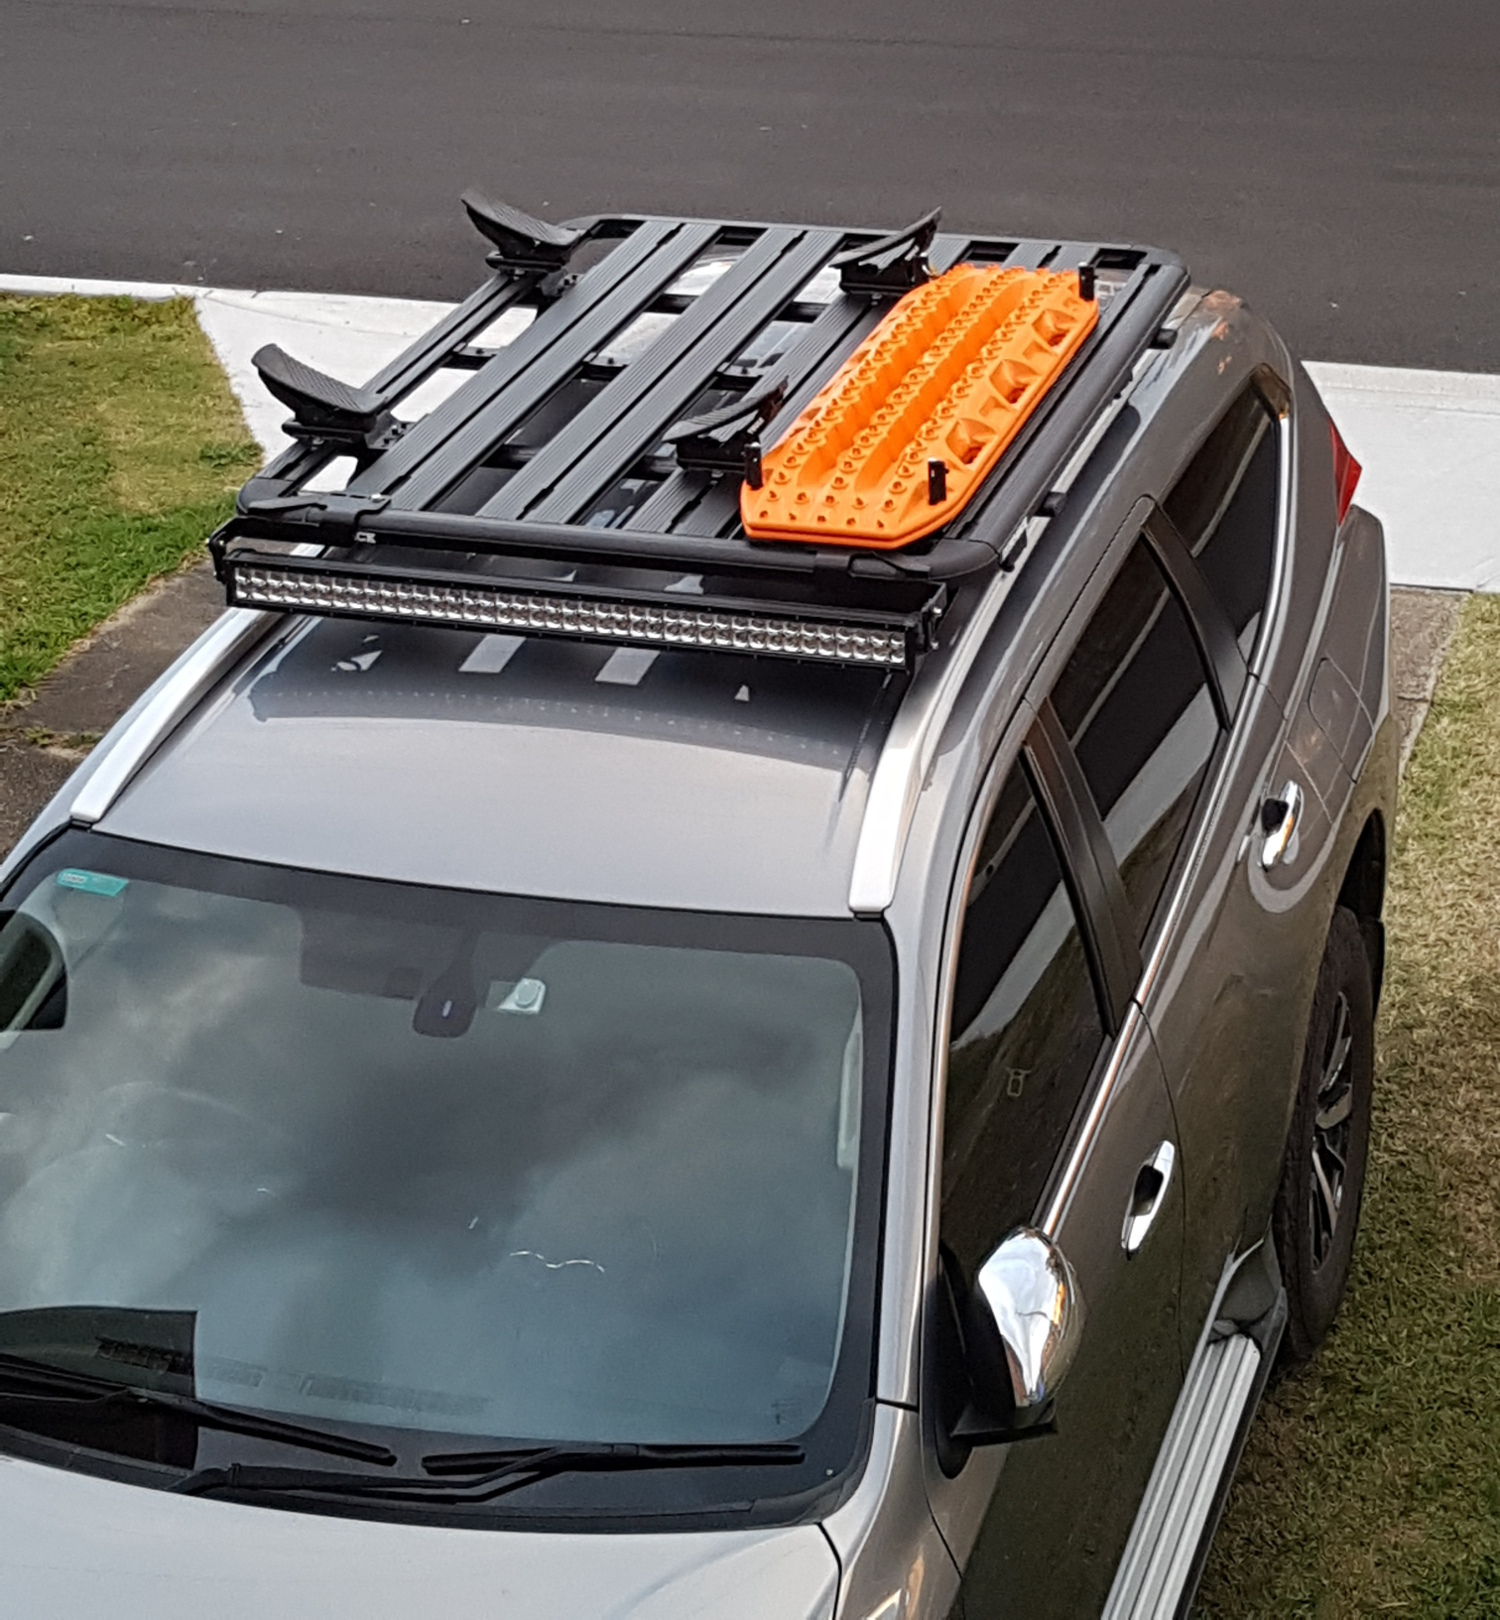 4Wd Supacentre Roof Rack Installation led light bar – the pajero sport